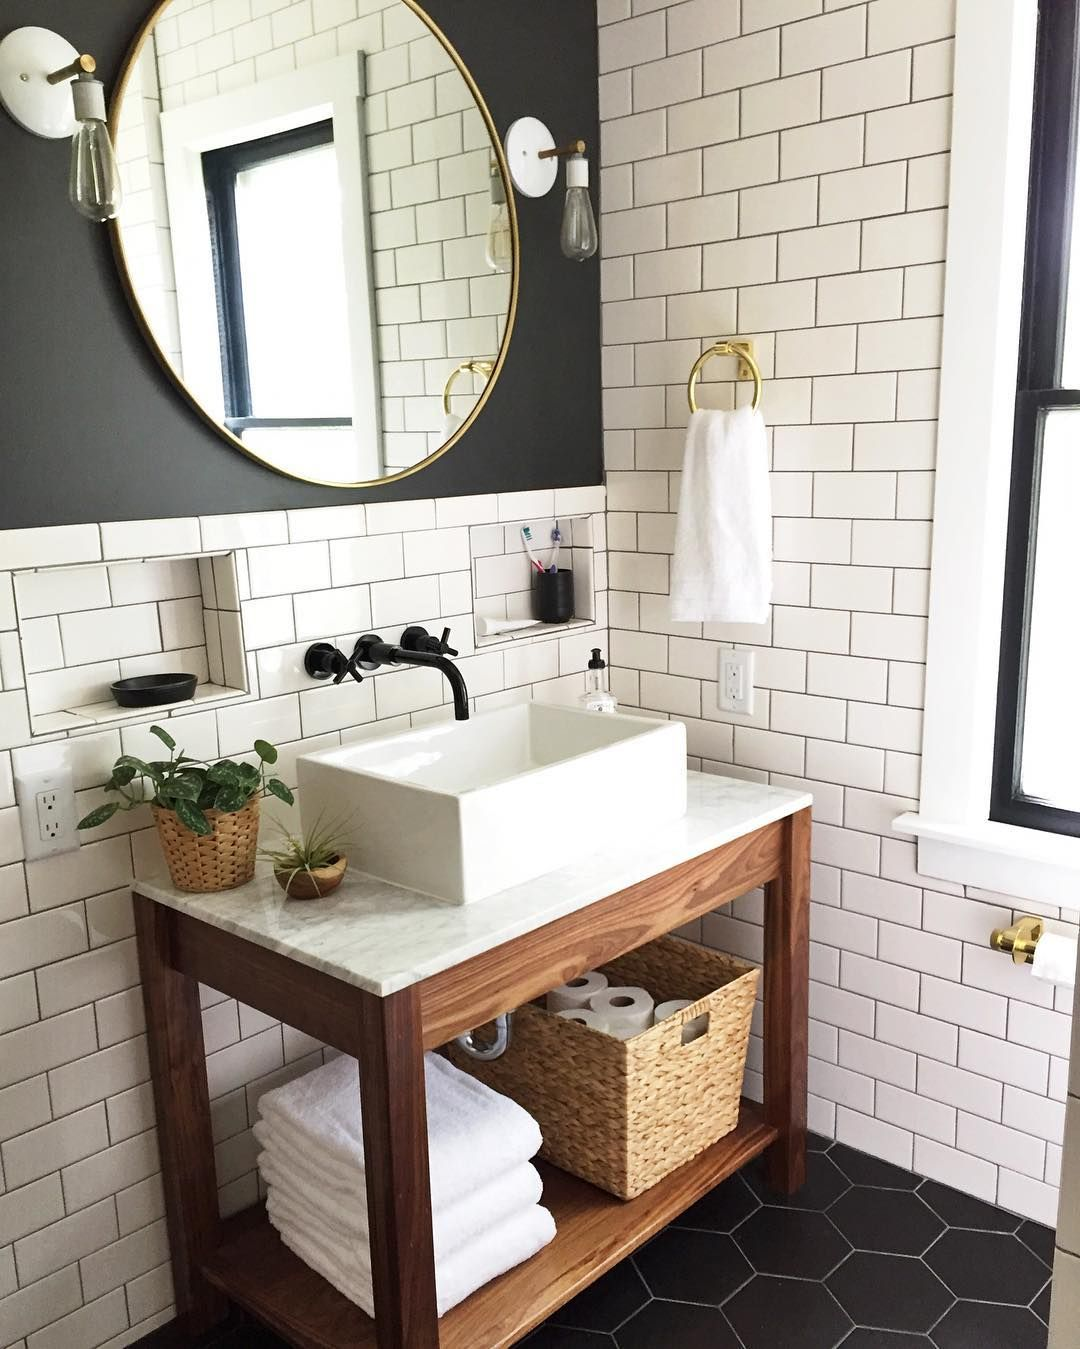 Bathroom Design Trends - Bathroom Trends in 2017 | jaj | Pinterest ...